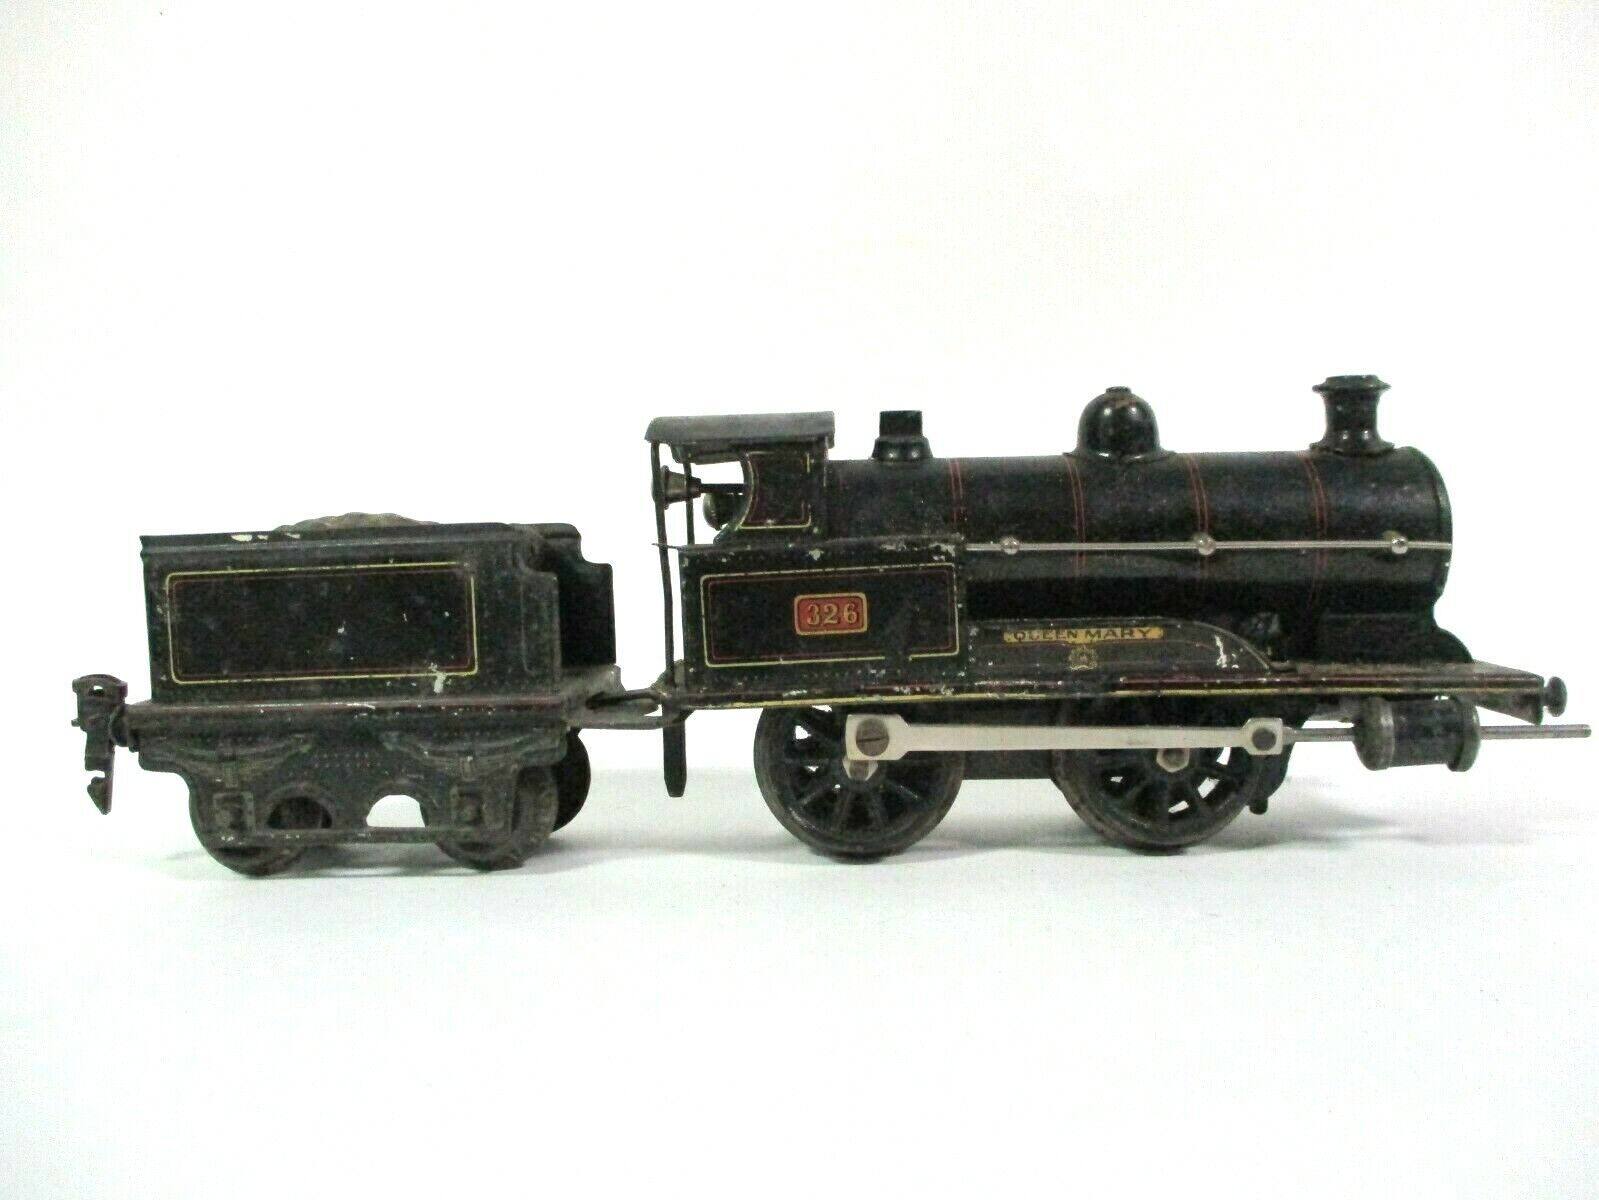 Marklin for Gamage 326 Queen Mary Locomotive and Tender Model Railway B64-15